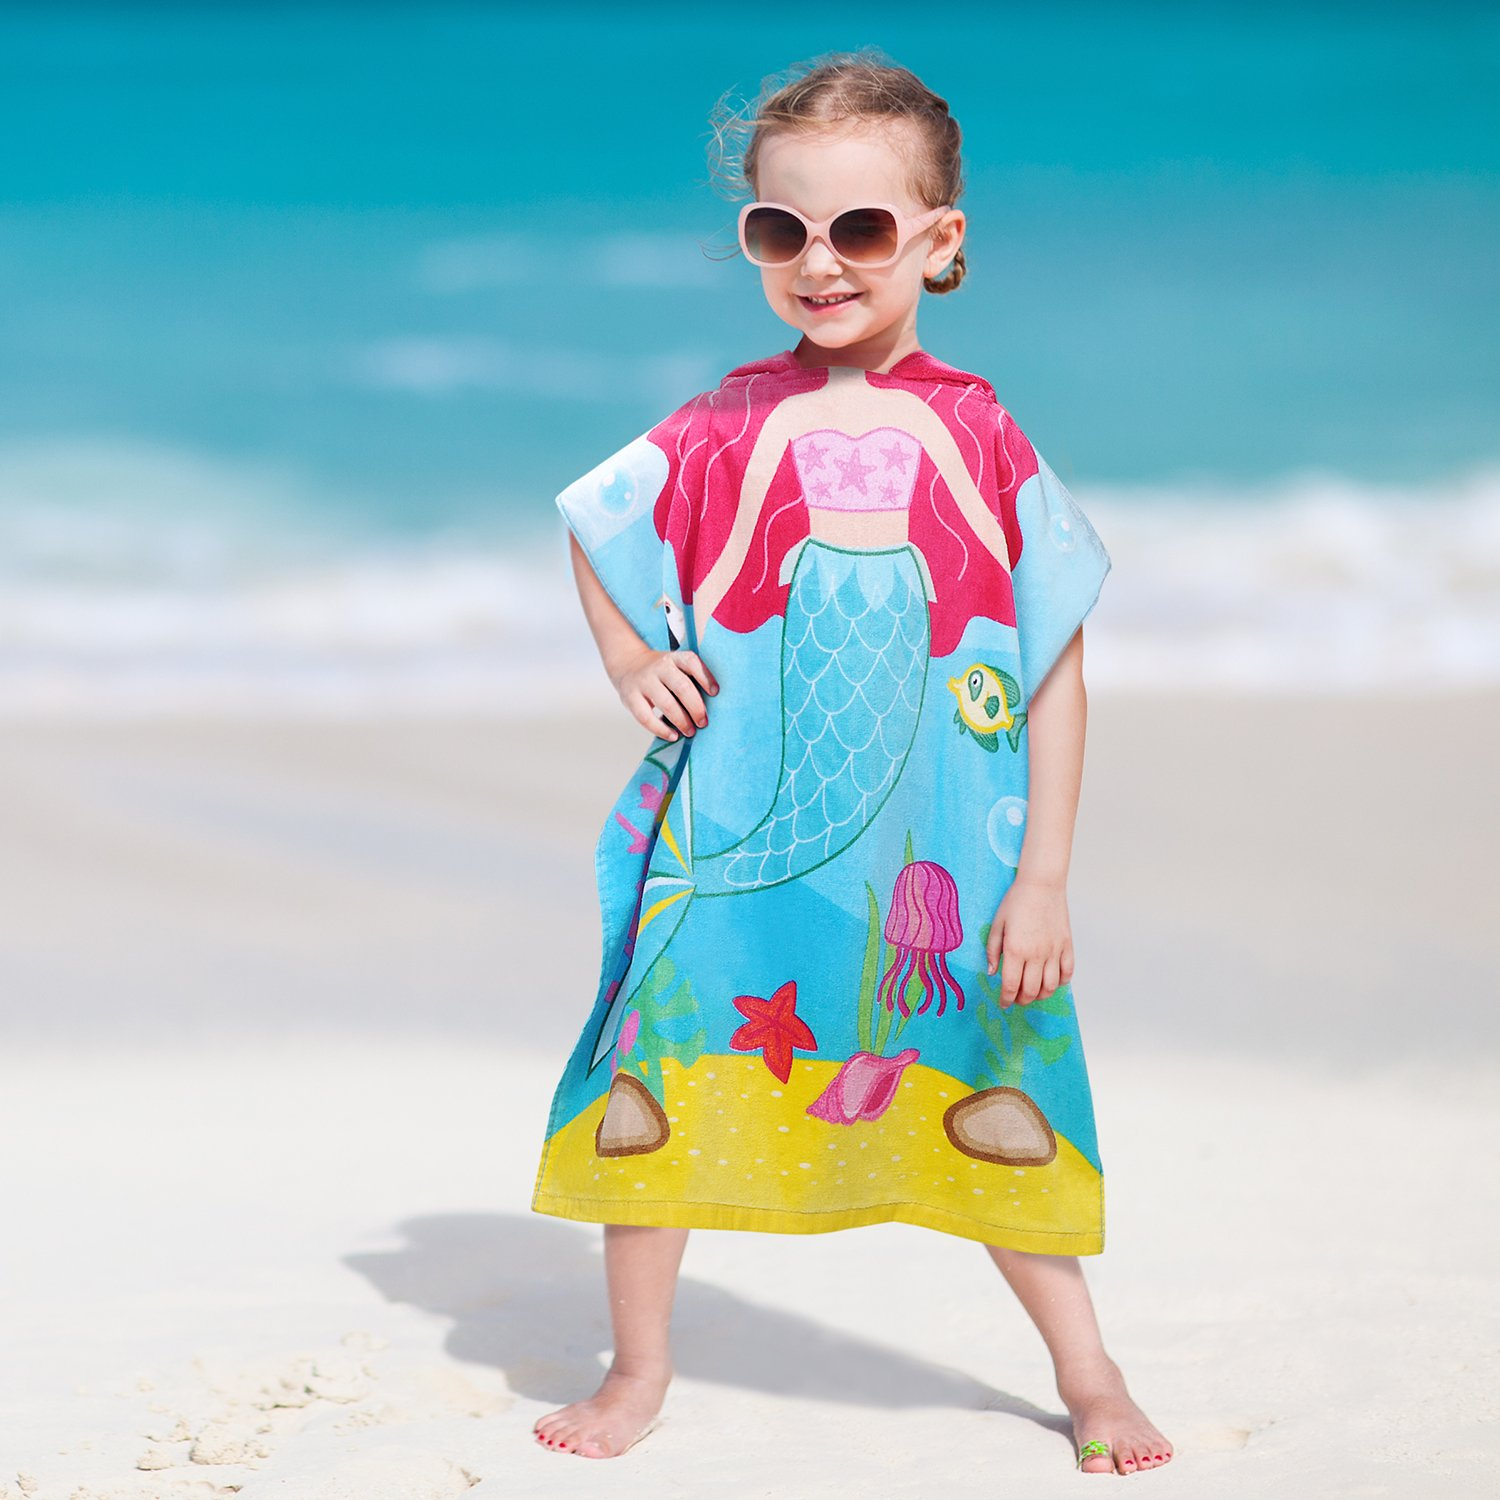 Hooded Bath Towel for 2 to 6 Years Girl,100% Cotton Water Absorption Beach Poncho Swim Changing Robe Mermaid Pattern Sand Proof